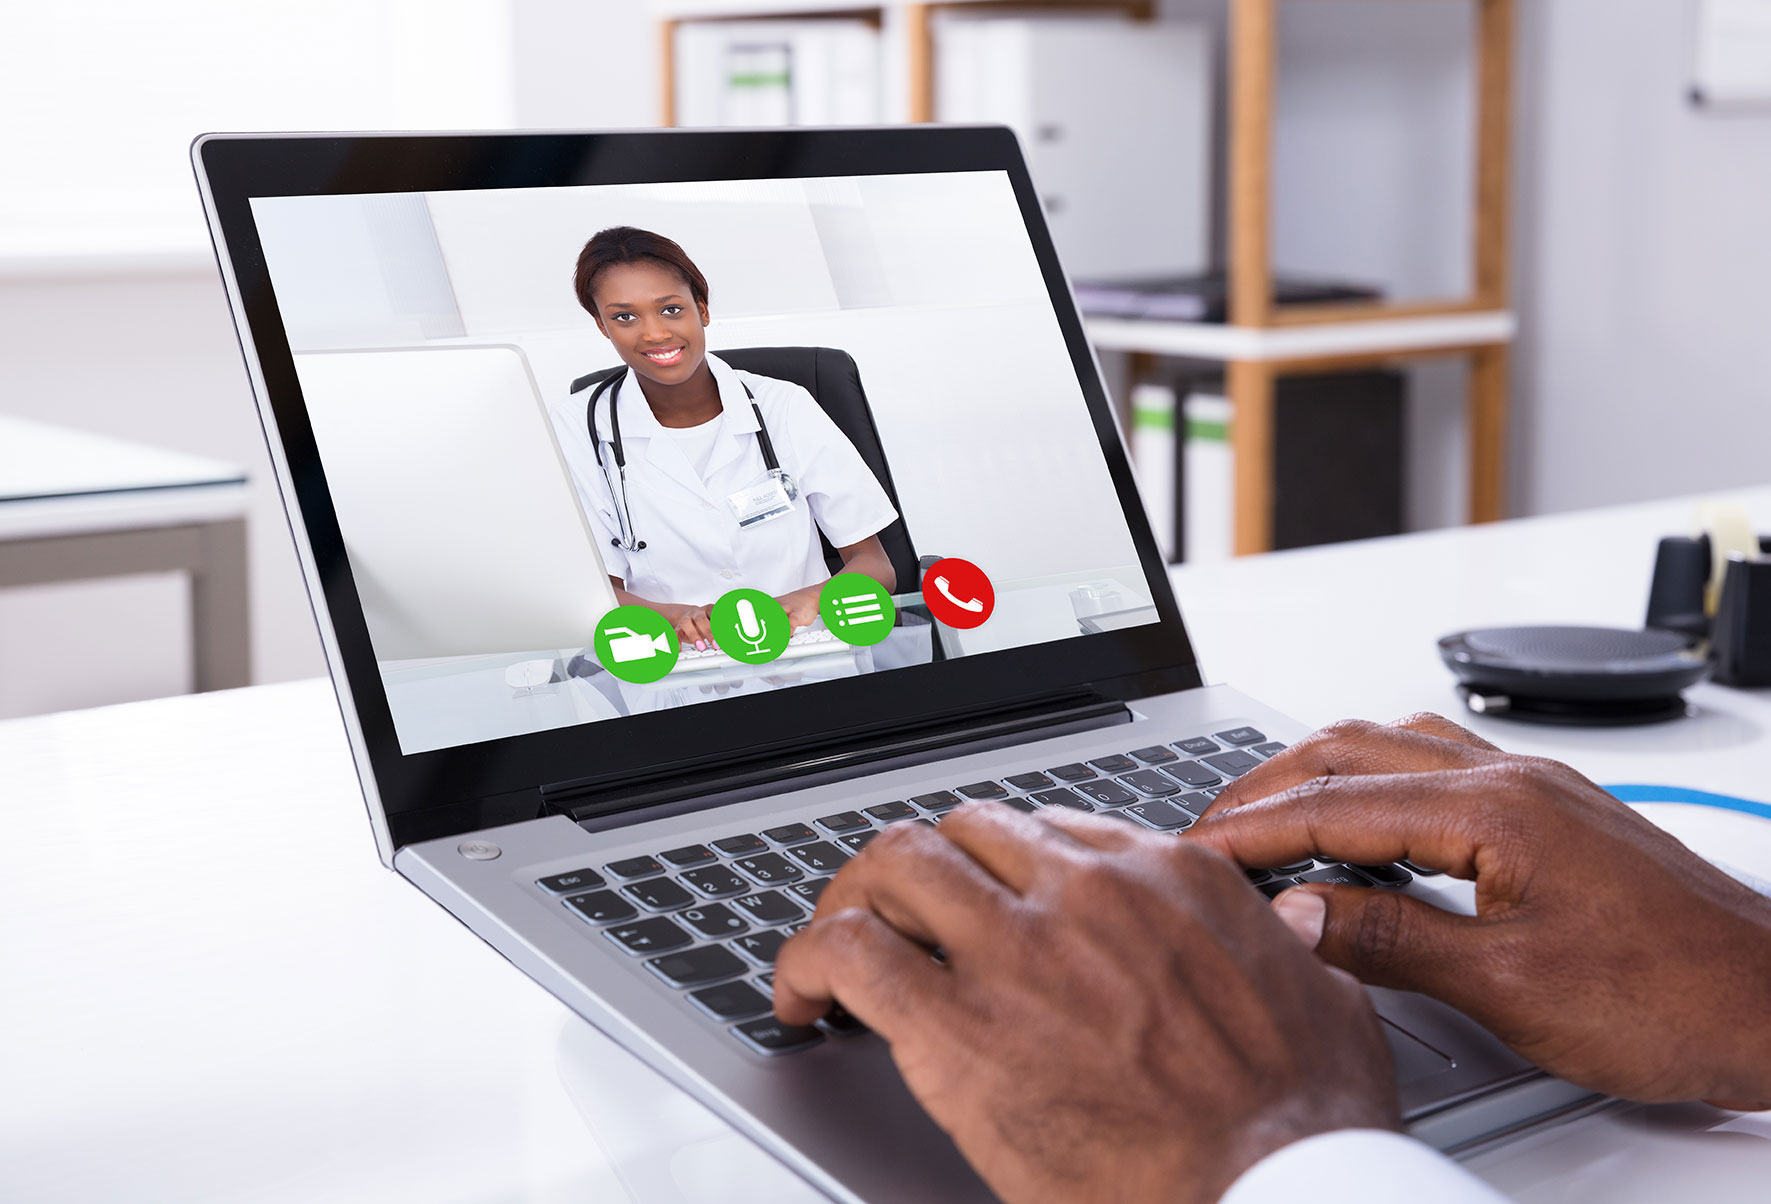 COVID-19 knoxville updates - telemedicine news - knoxville image